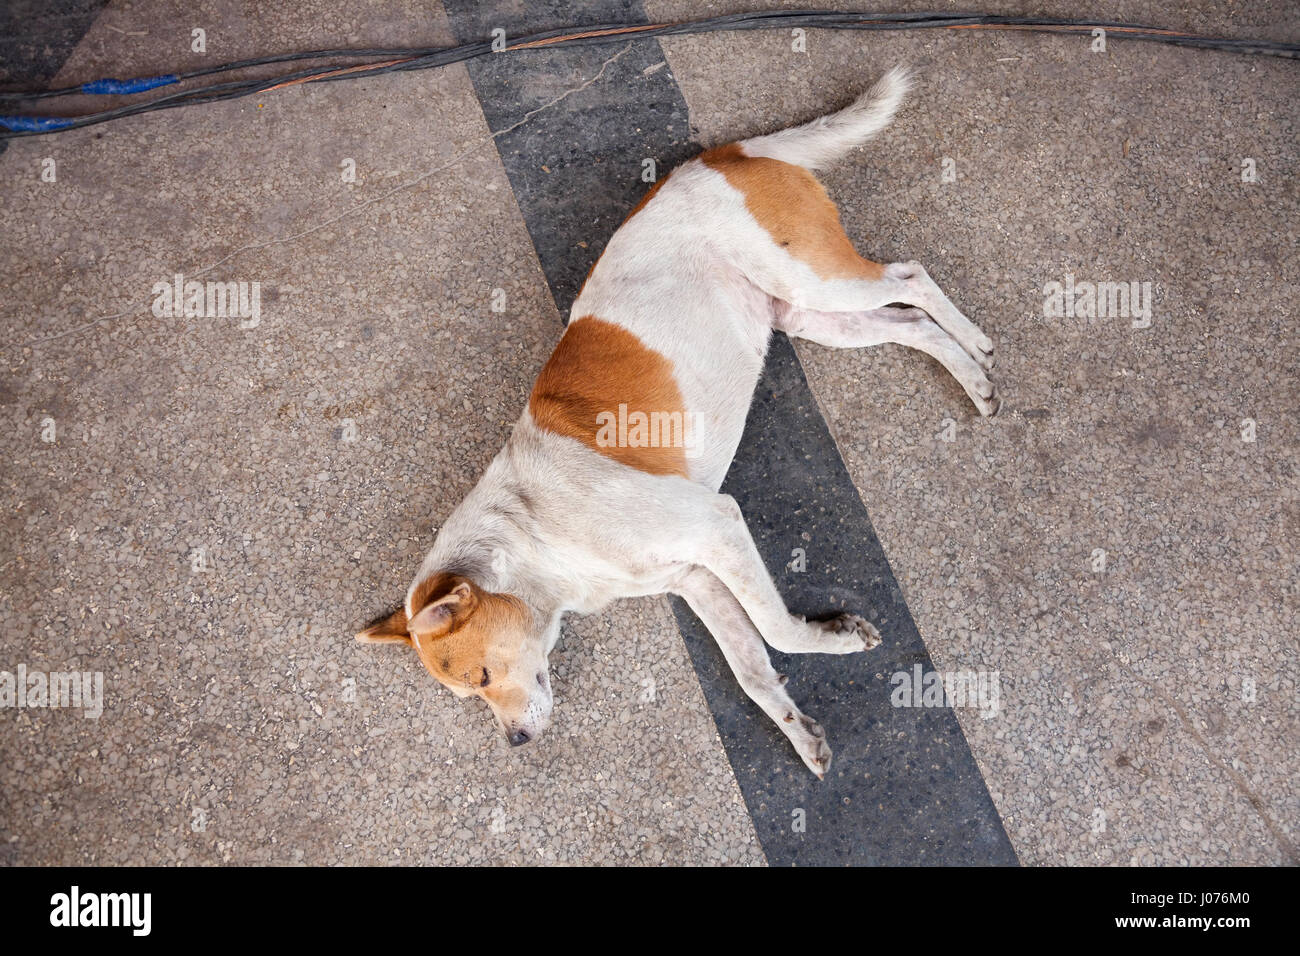 A Canis familiaris (dog) laying on a sidewalk in Old Havana, Cuba. - Stock Image